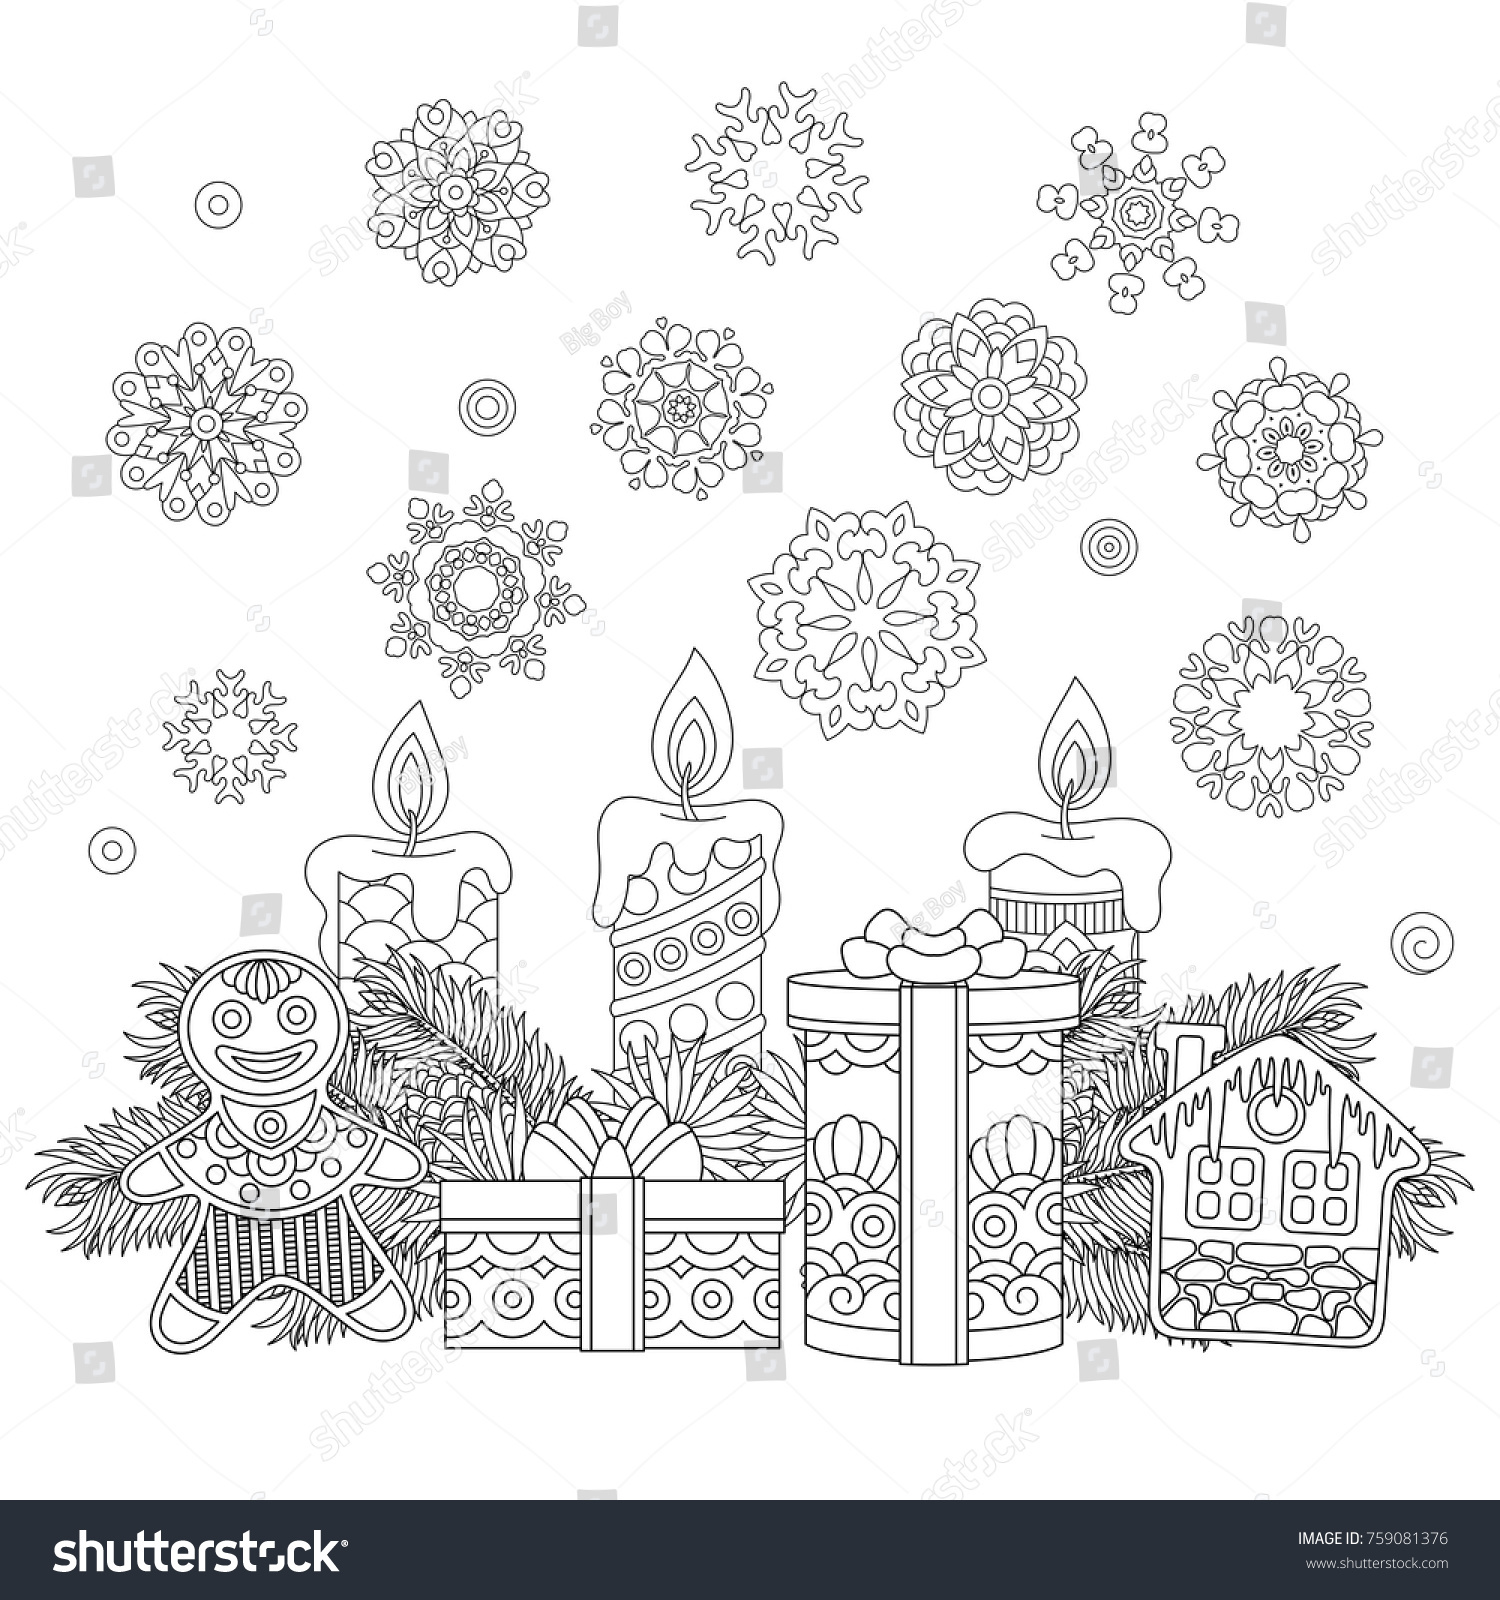 Coloring Page Christmas Ornaments Children Presents Stock Vector ...